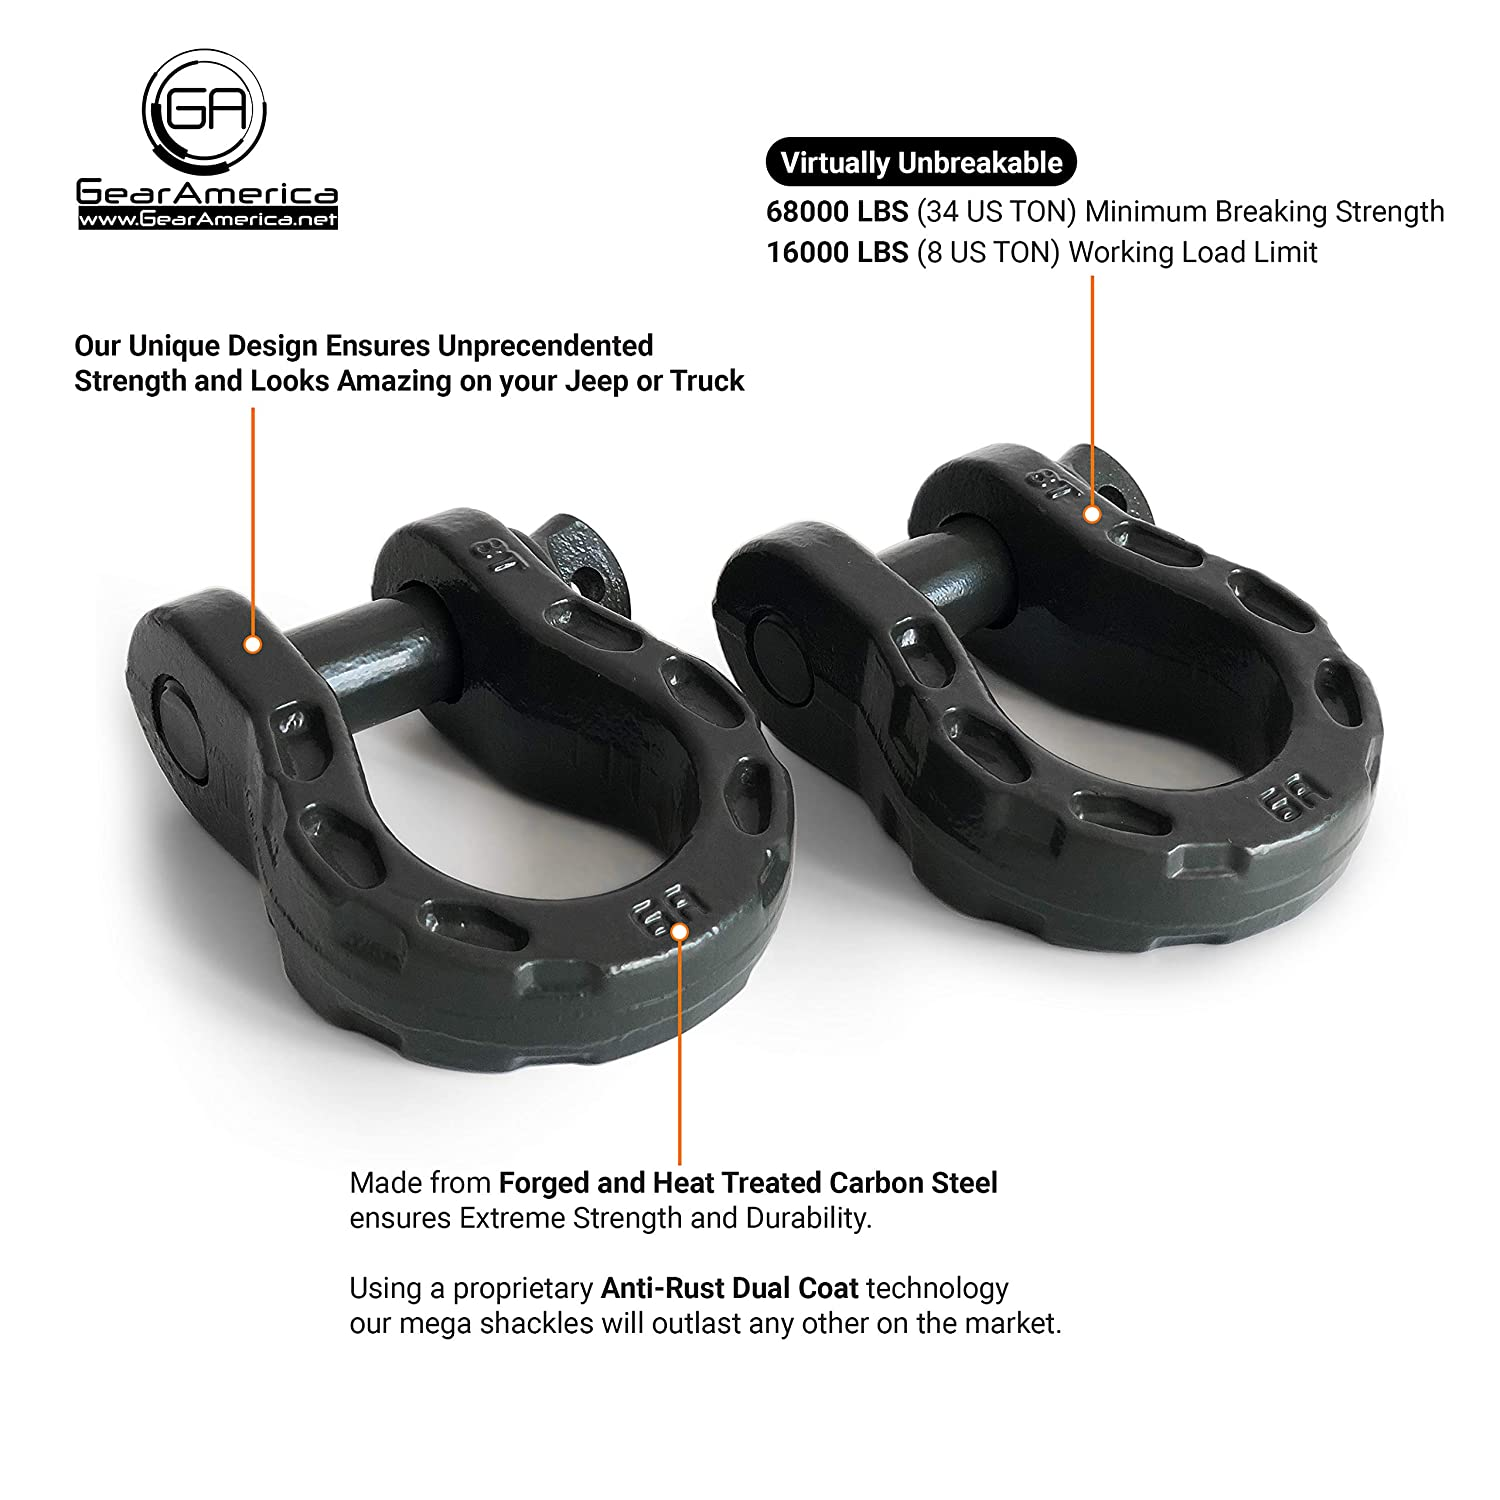 | 68000 lbs GearAmerica Mega Duty D Ring Shackles Gray Washers| Securely Connect Tow Strap or Winch Rope to Jeep for Off-Road 4x4 Recovery 7//8 Pin 2 PK 34 US Ton Strength 3//4 Shackle